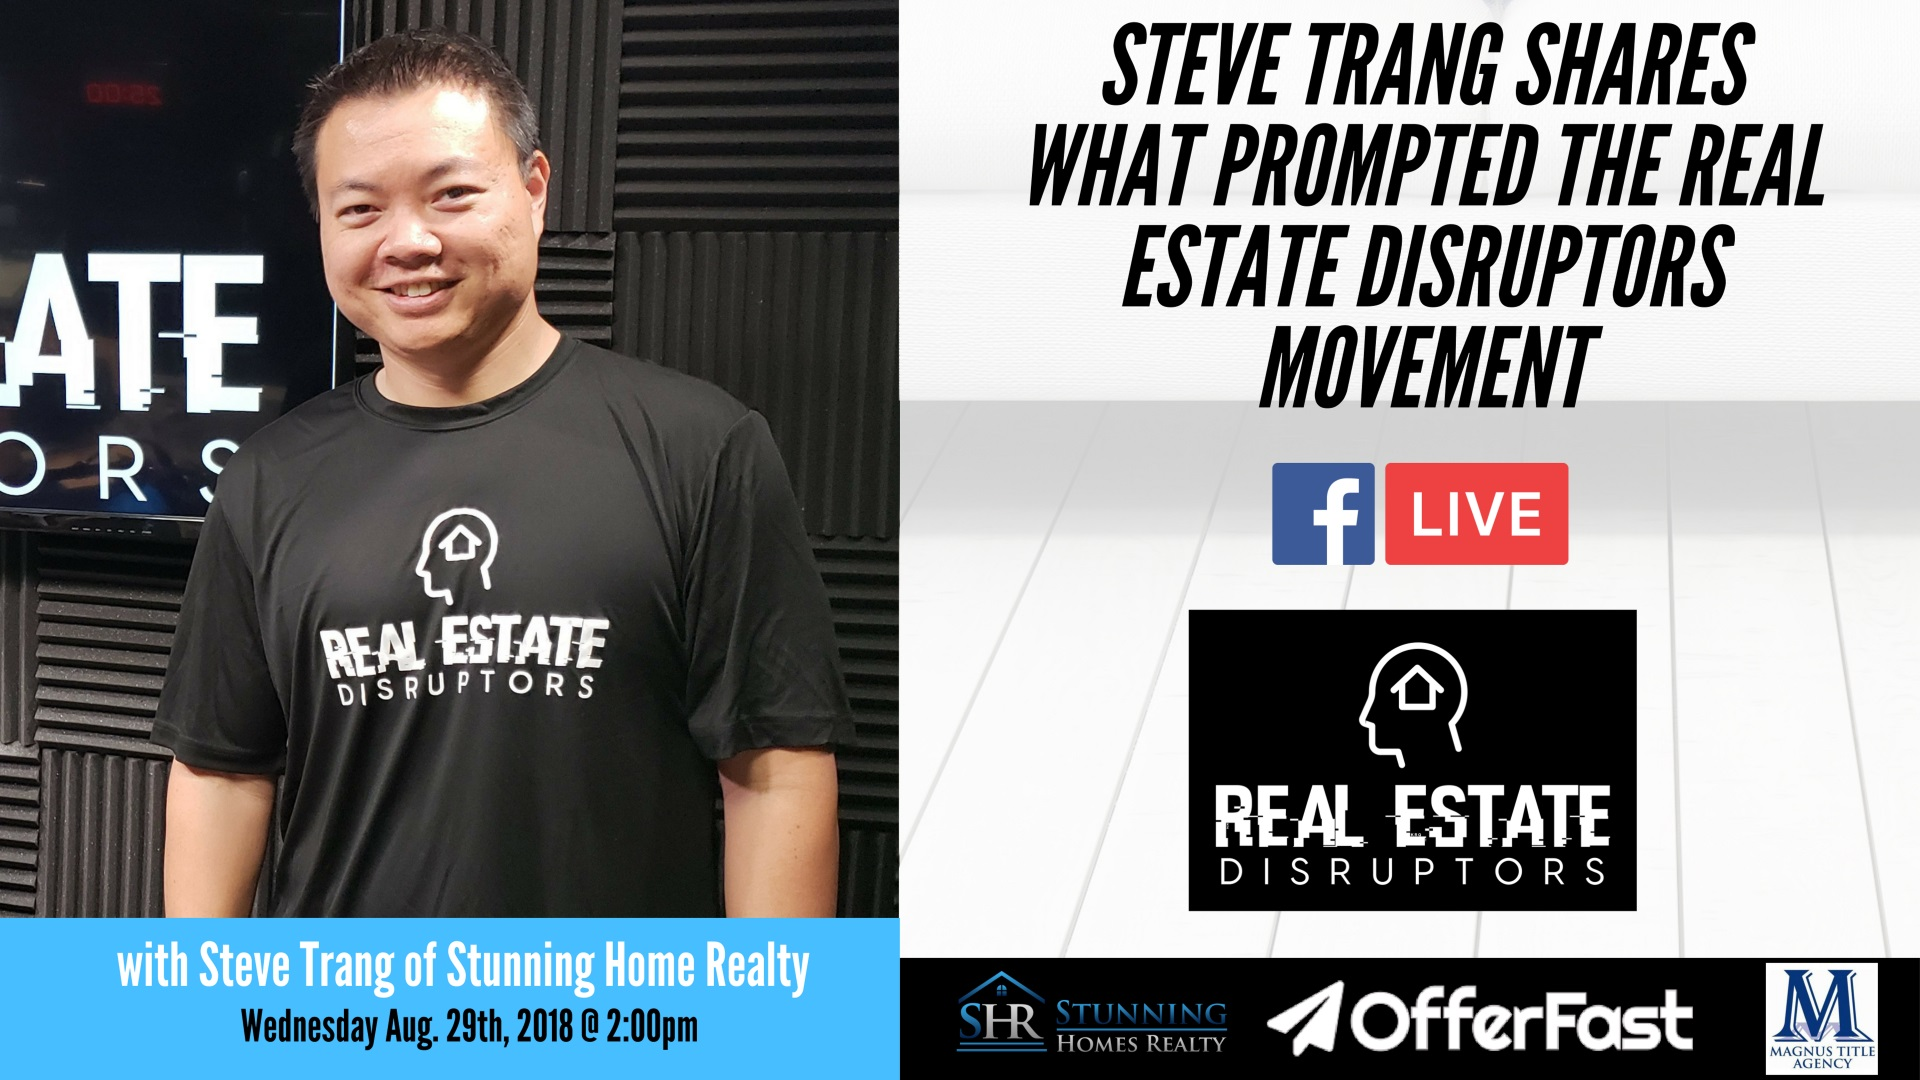 Interview with Steve Trang